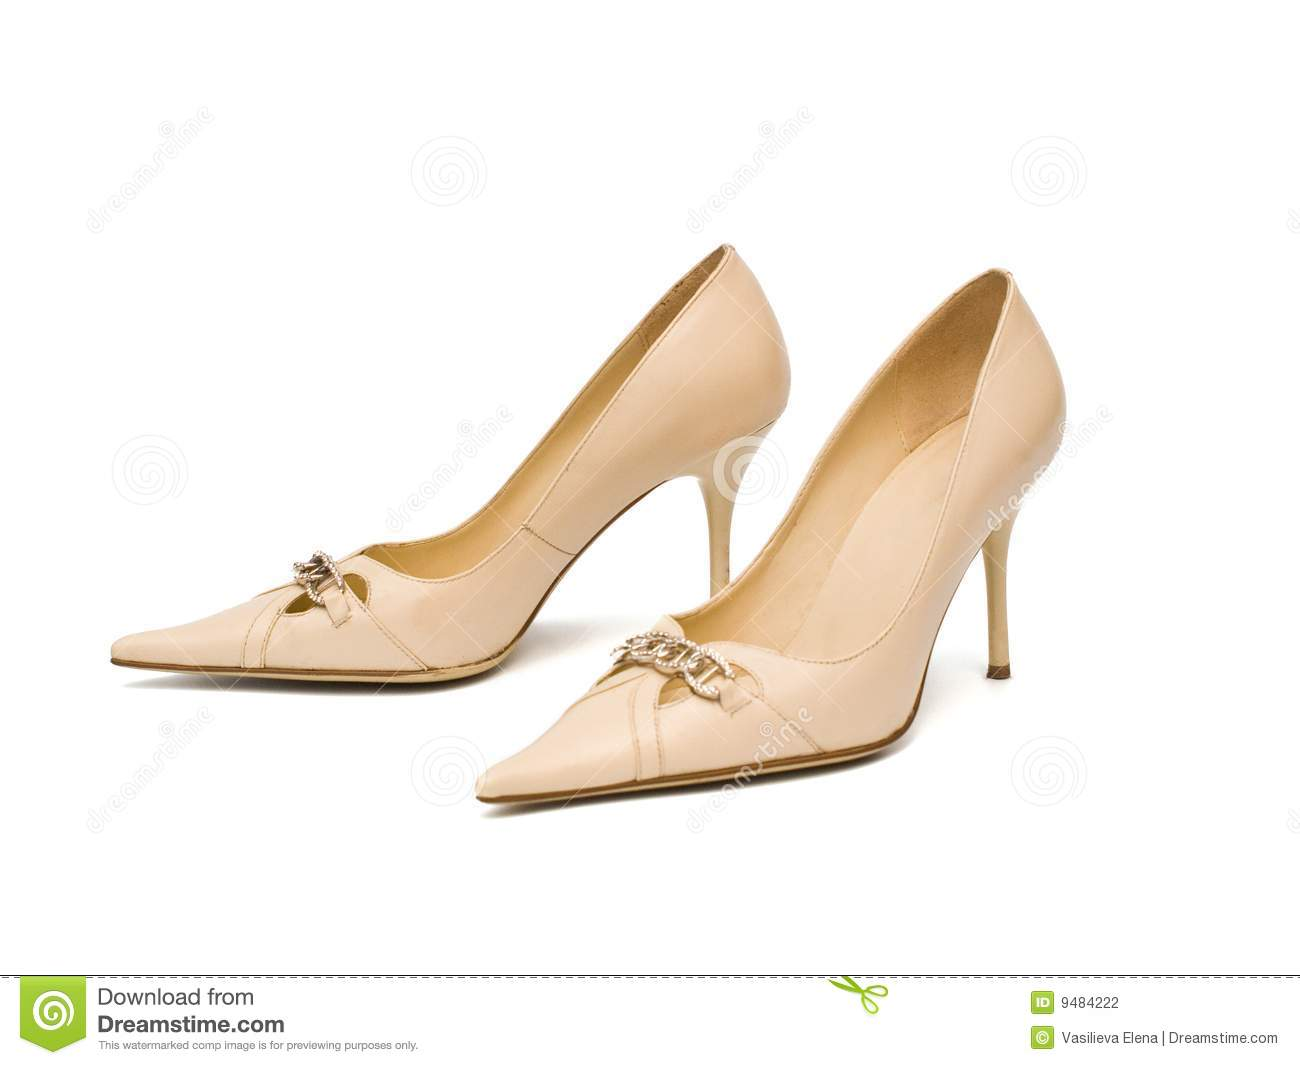 Beige women s shoes on a white background, isolated